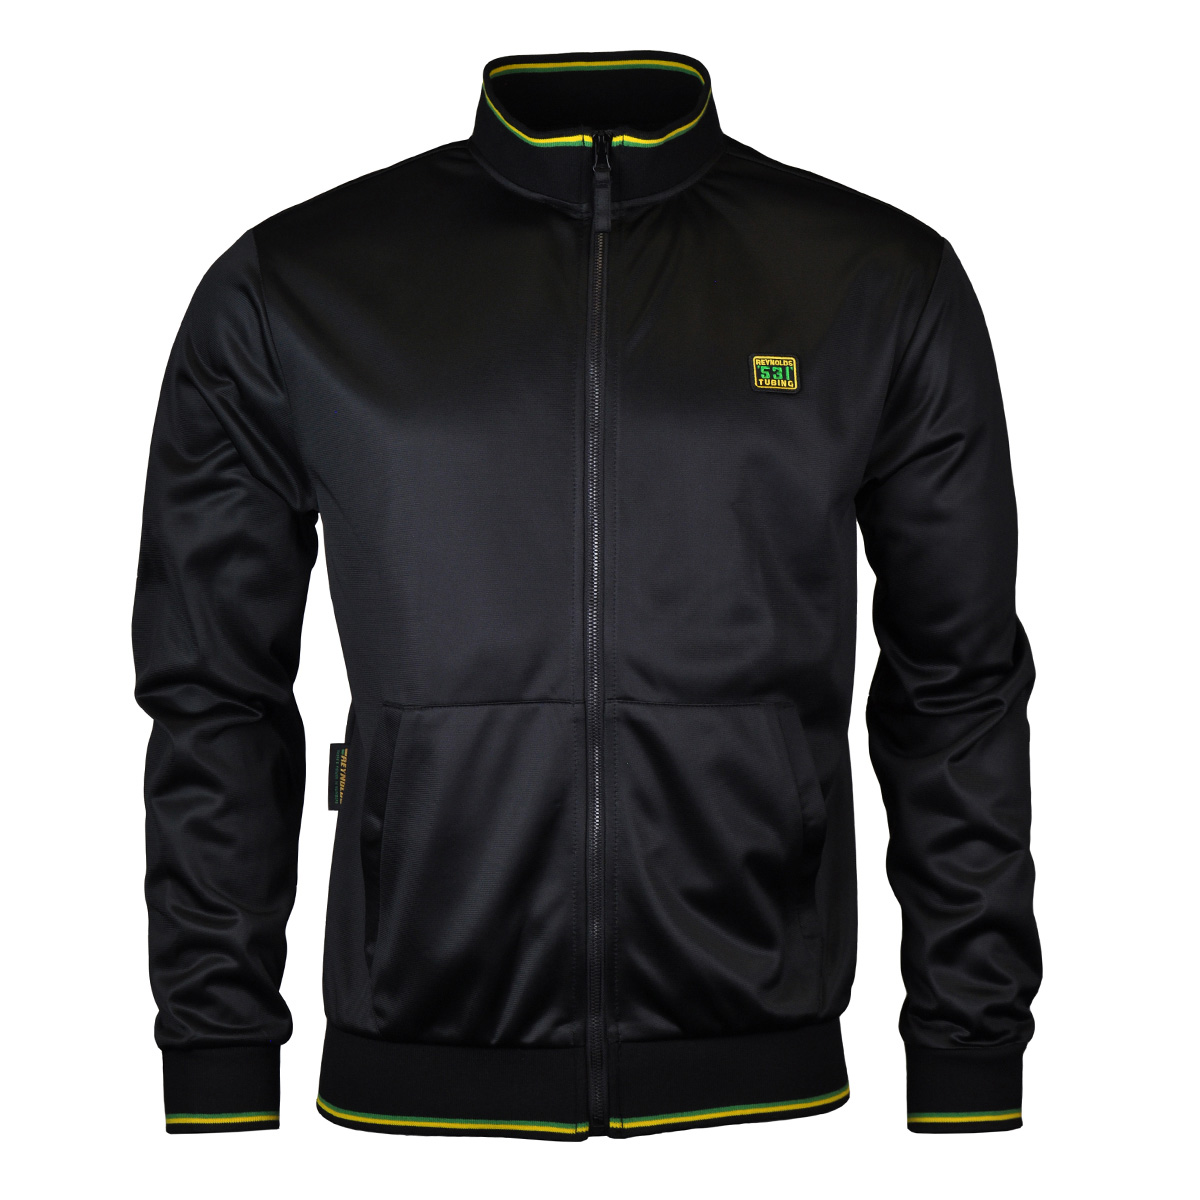 Reynolds Clothing 531 Tipped Full Zip Track Top   Jackets